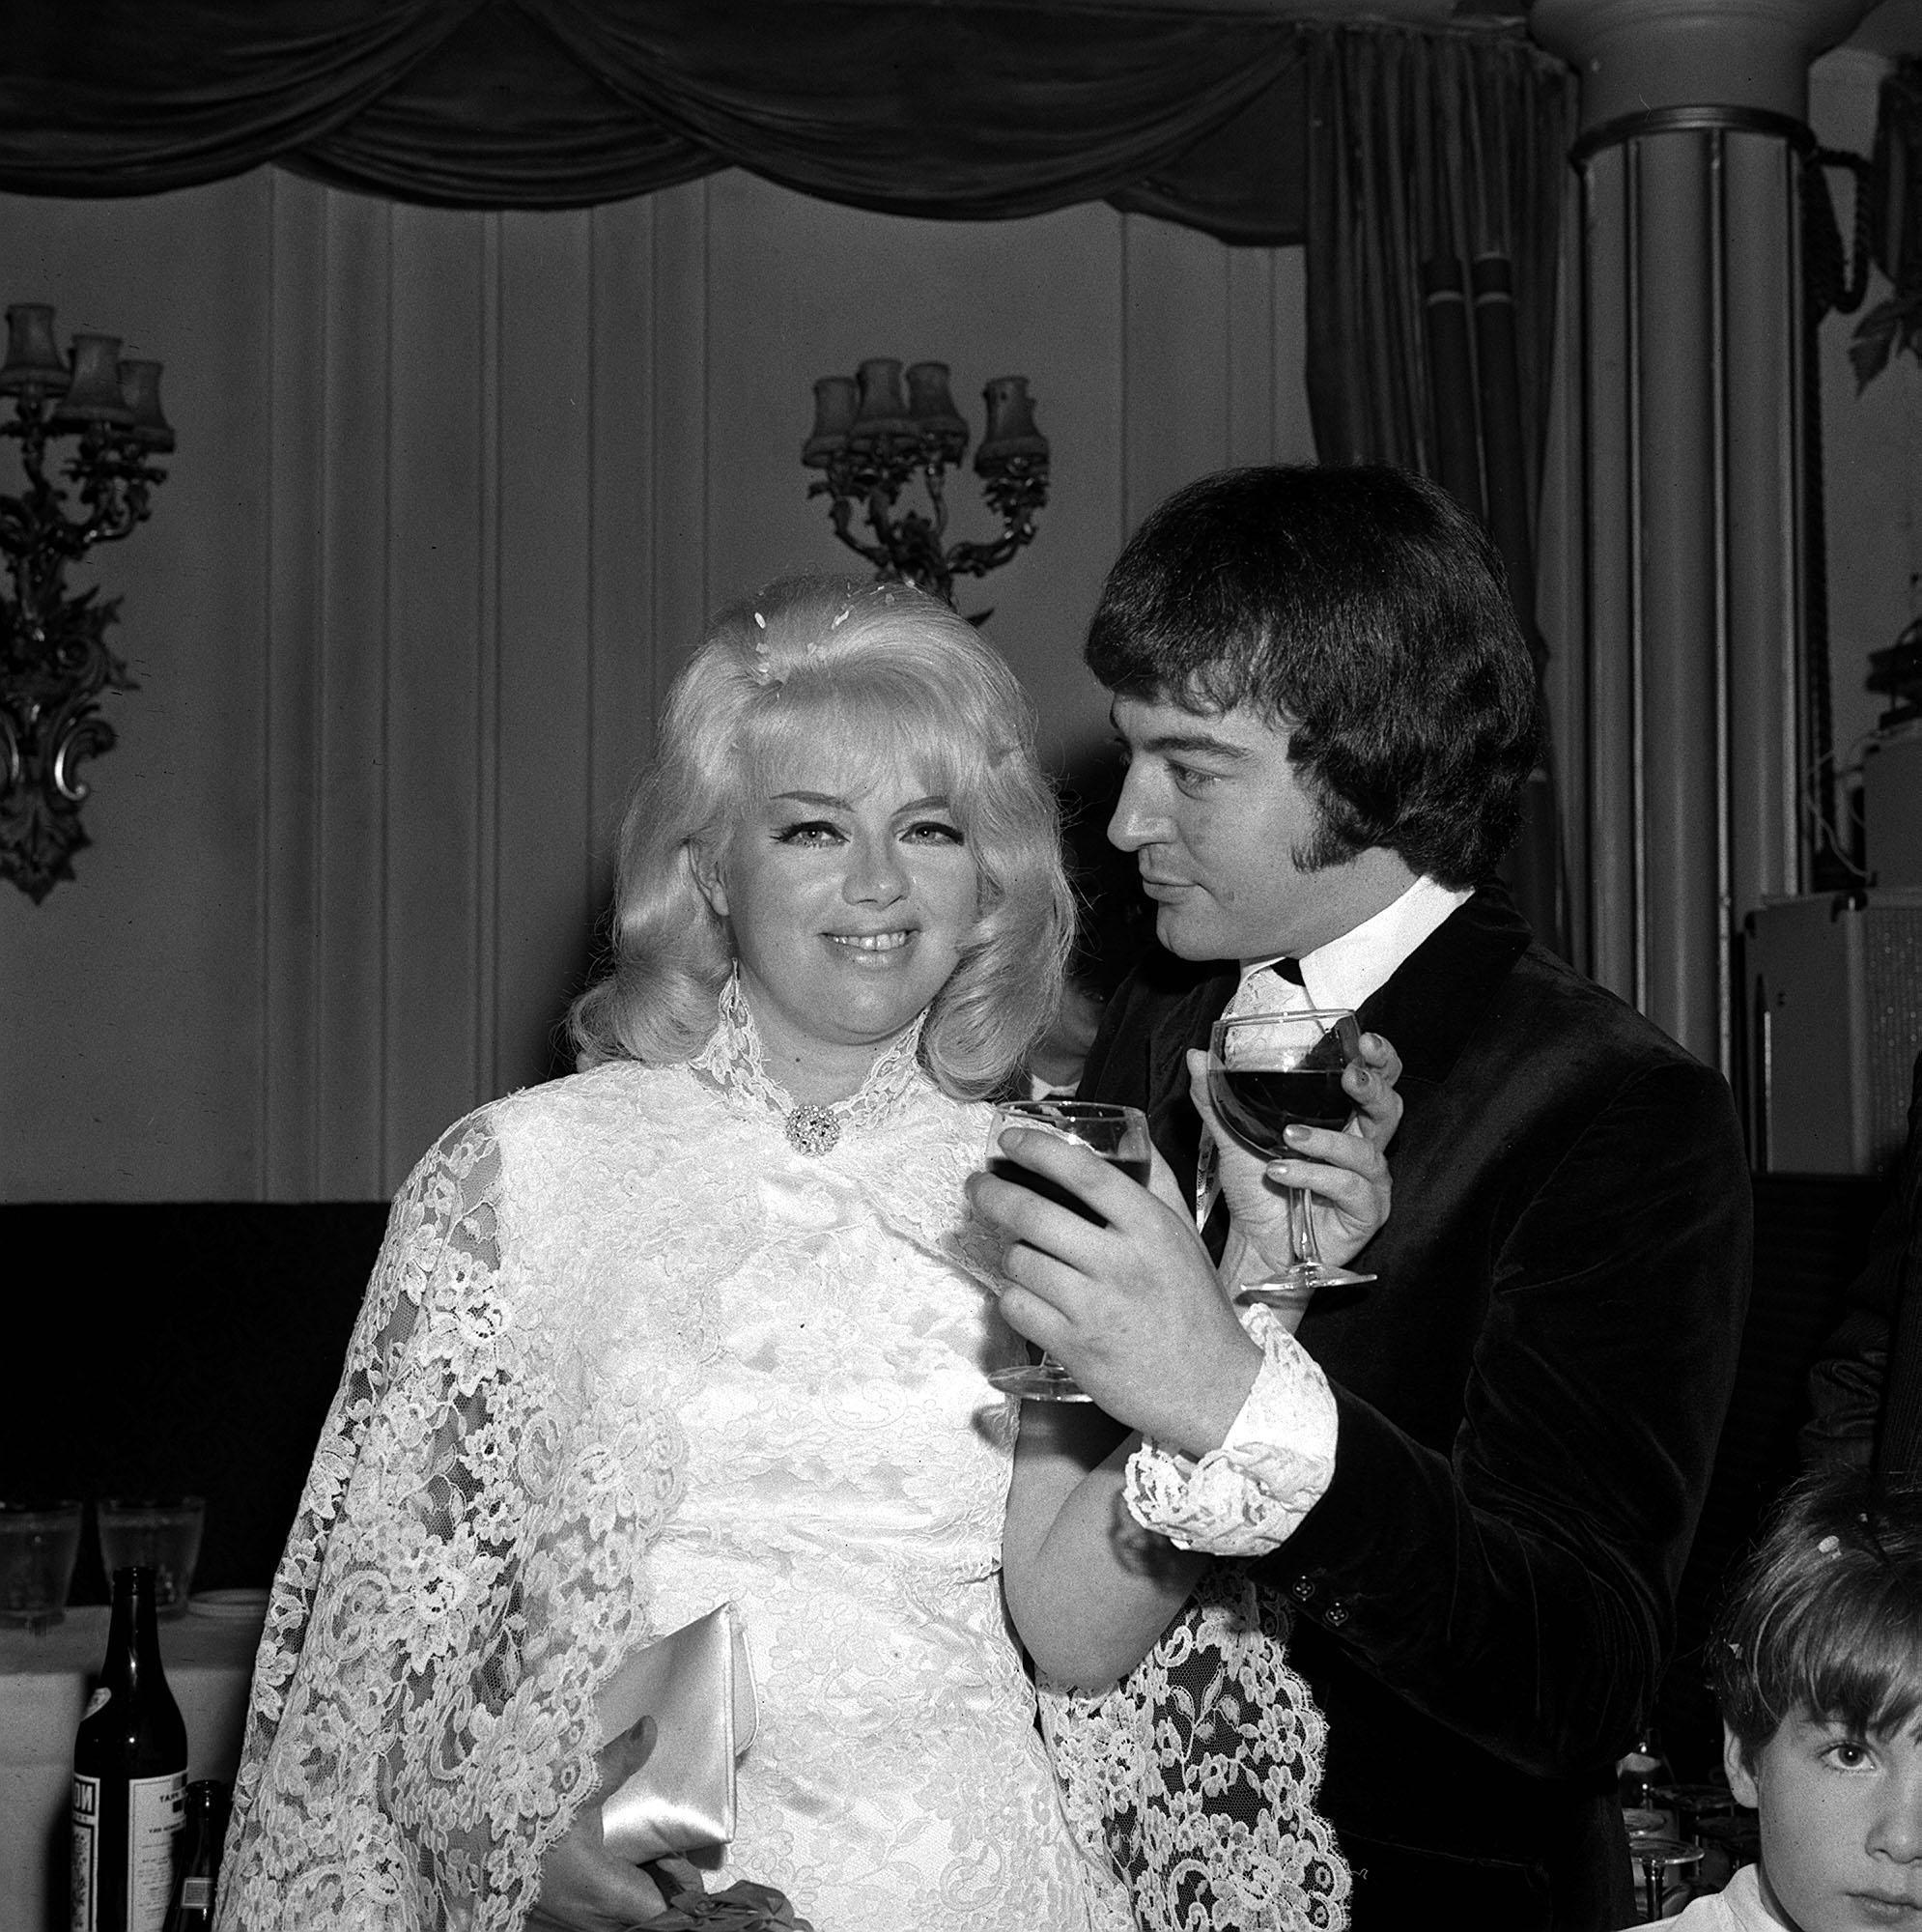 Diana Dors and her bridegroom Alan Lake exchange toasts at the reception at the Astor Club, after their wedding at Caxton Hall on 23 November 1968. They remained married until Dors' death in 1984.